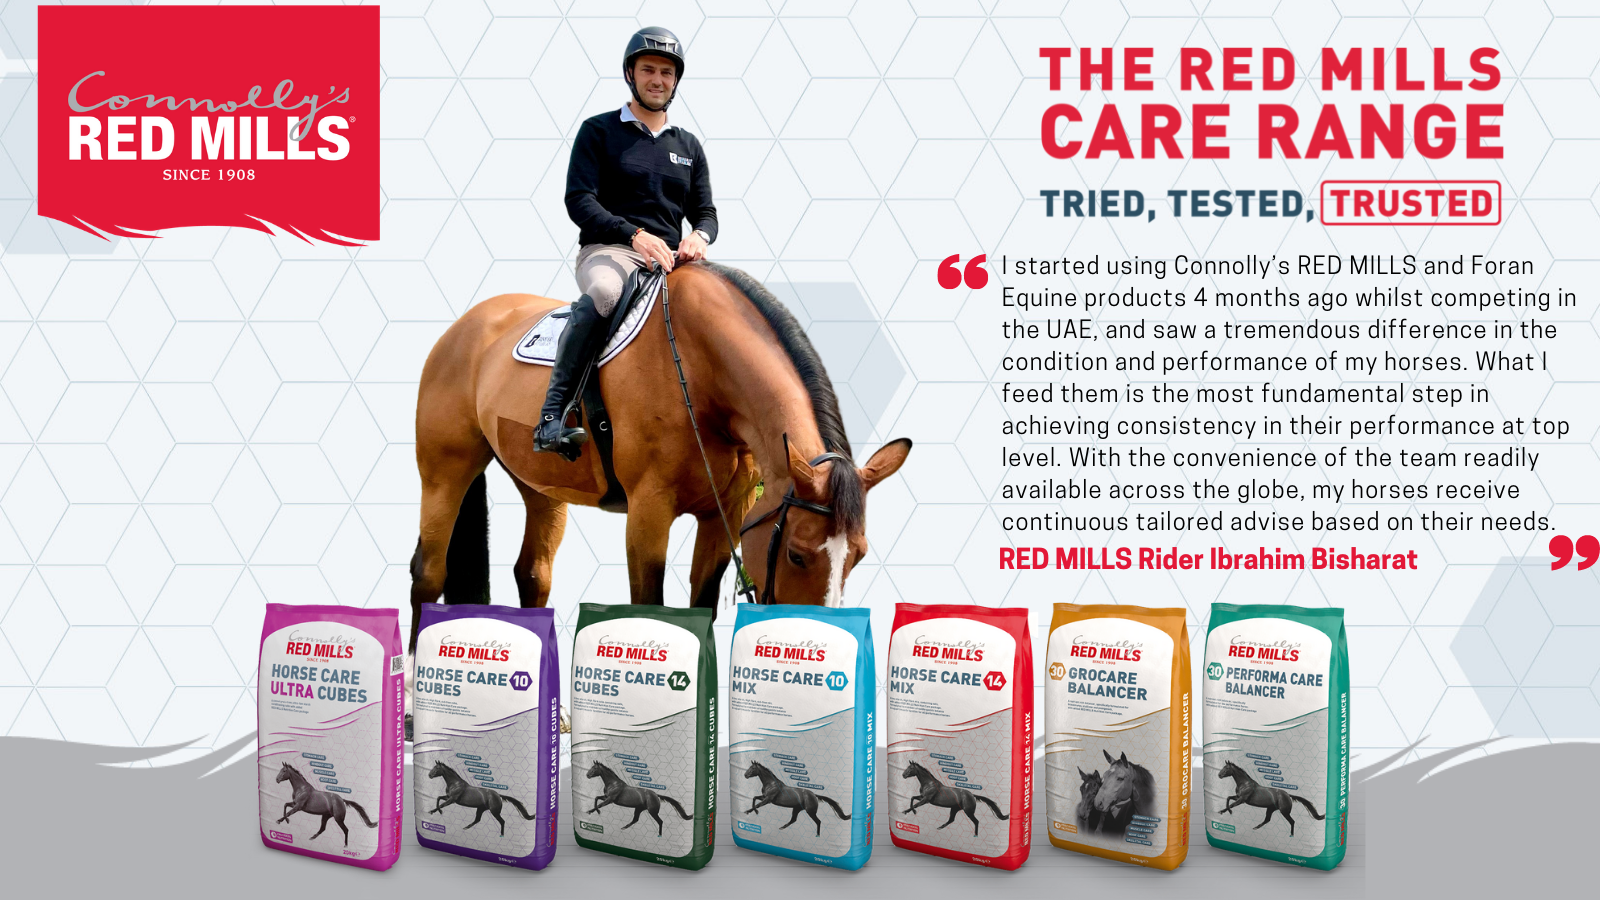 Ibrahim Bisharat joins Connolly's RED MILLS team of riders